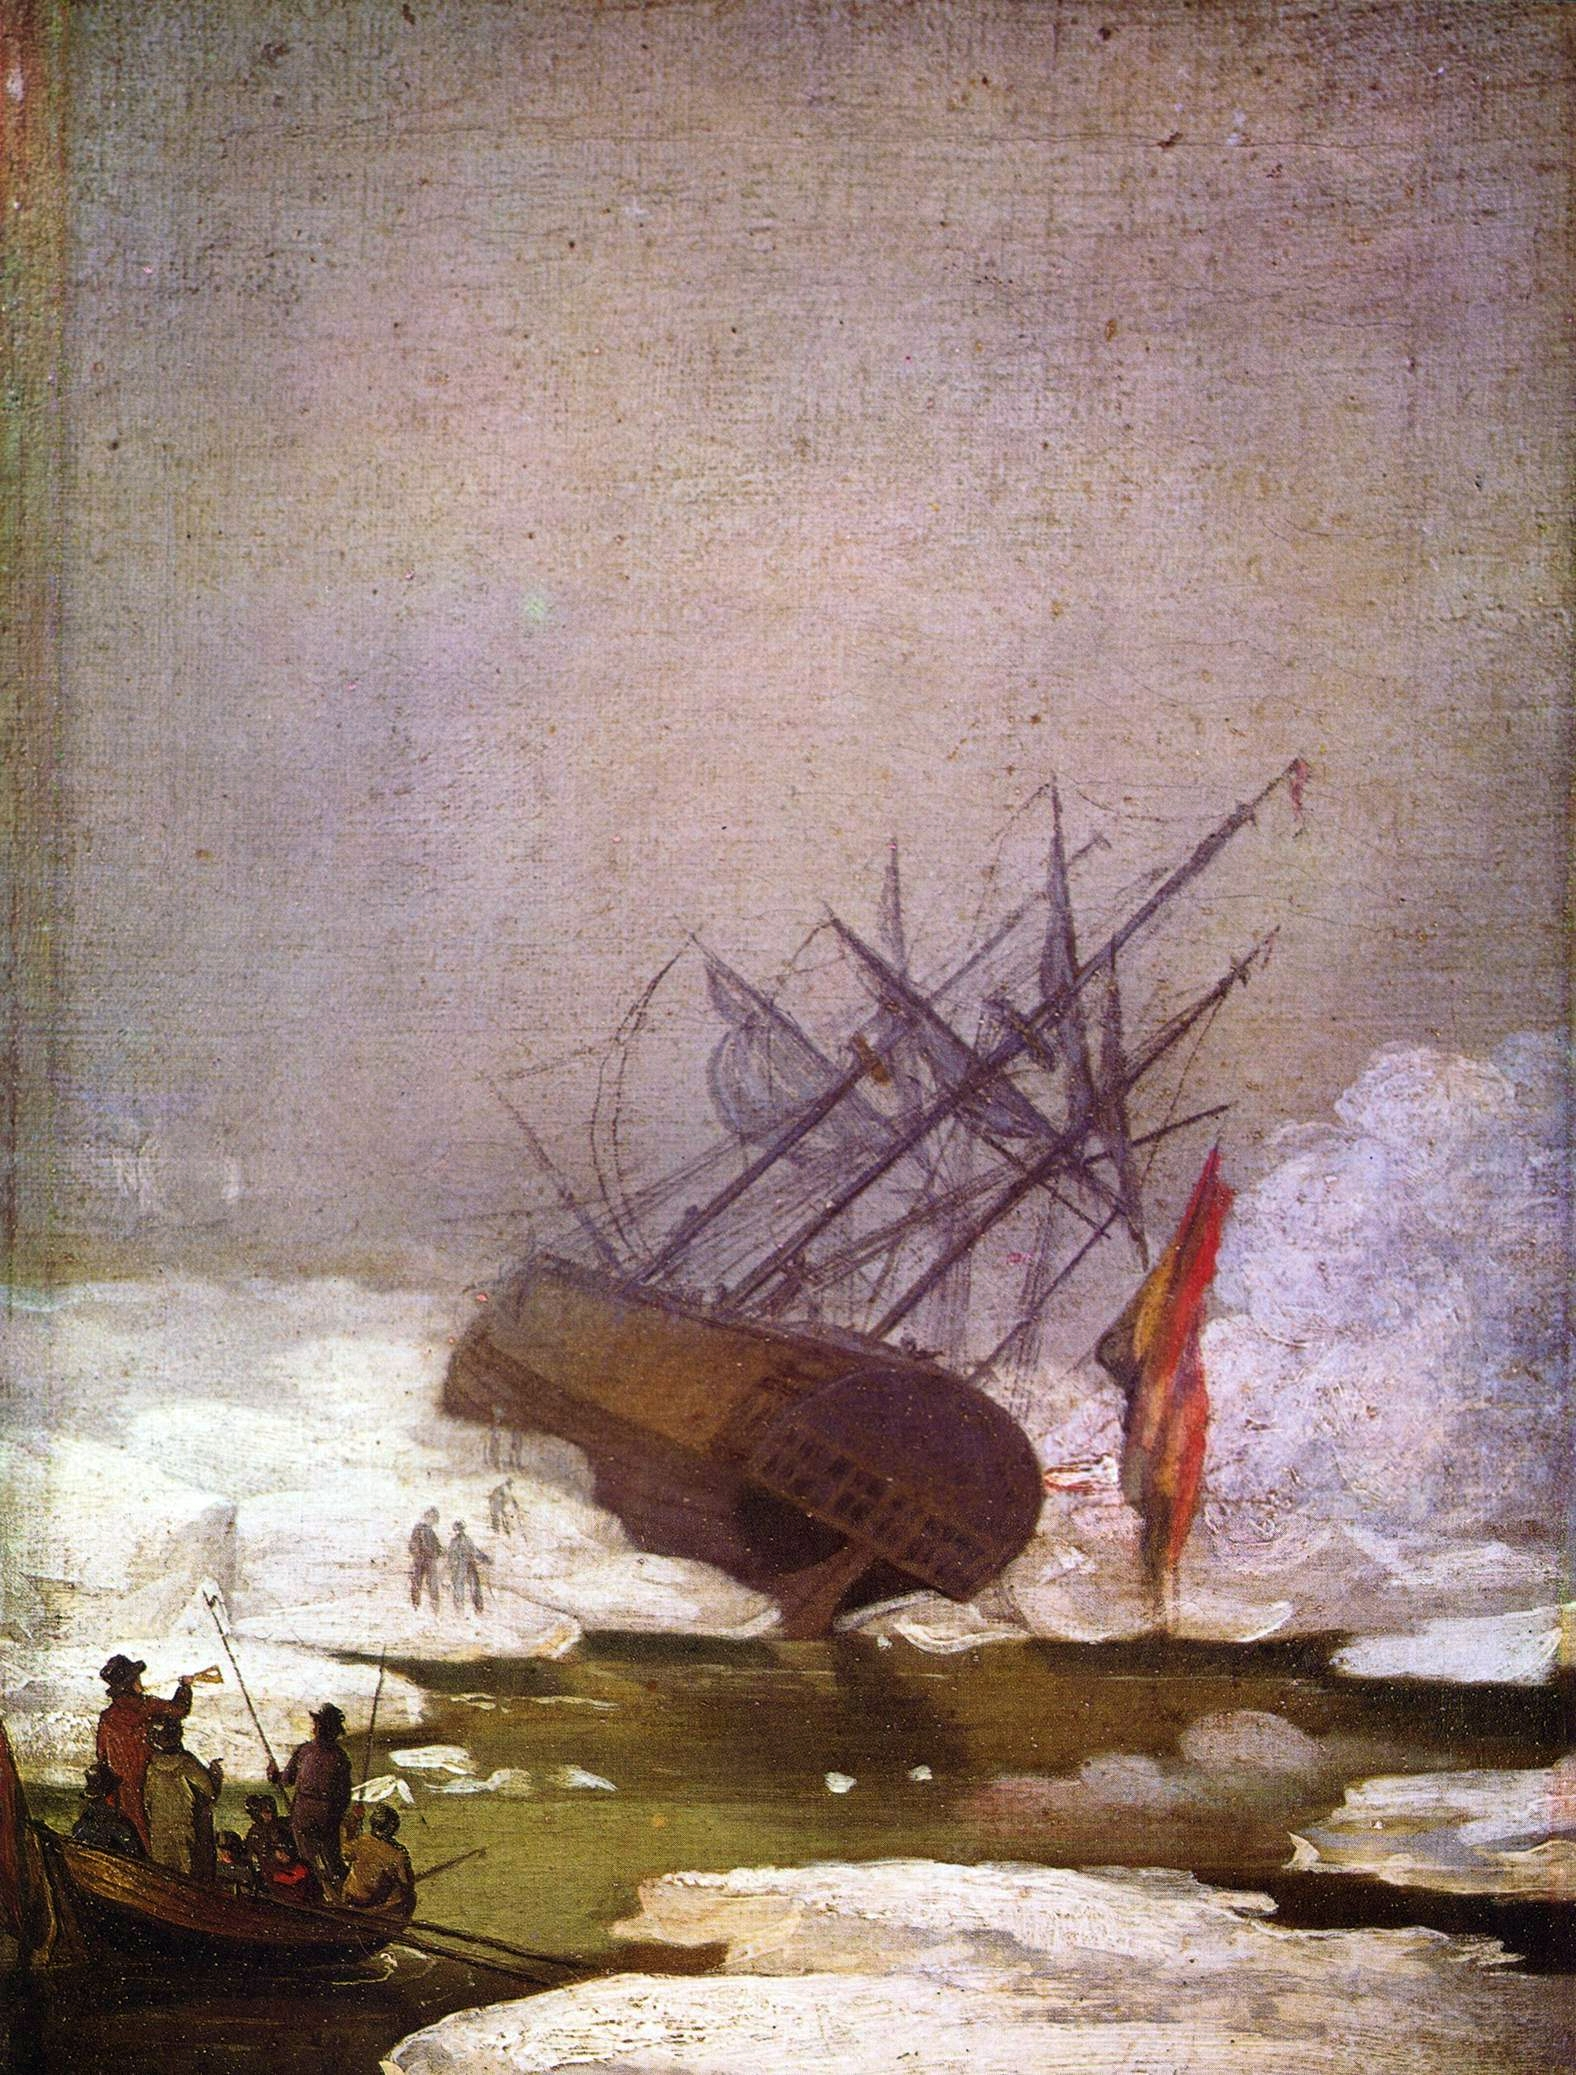 caspar david friedrich on pinterest david sailing ships. Black Bedroom Furniture Sets. Home Design Ideas